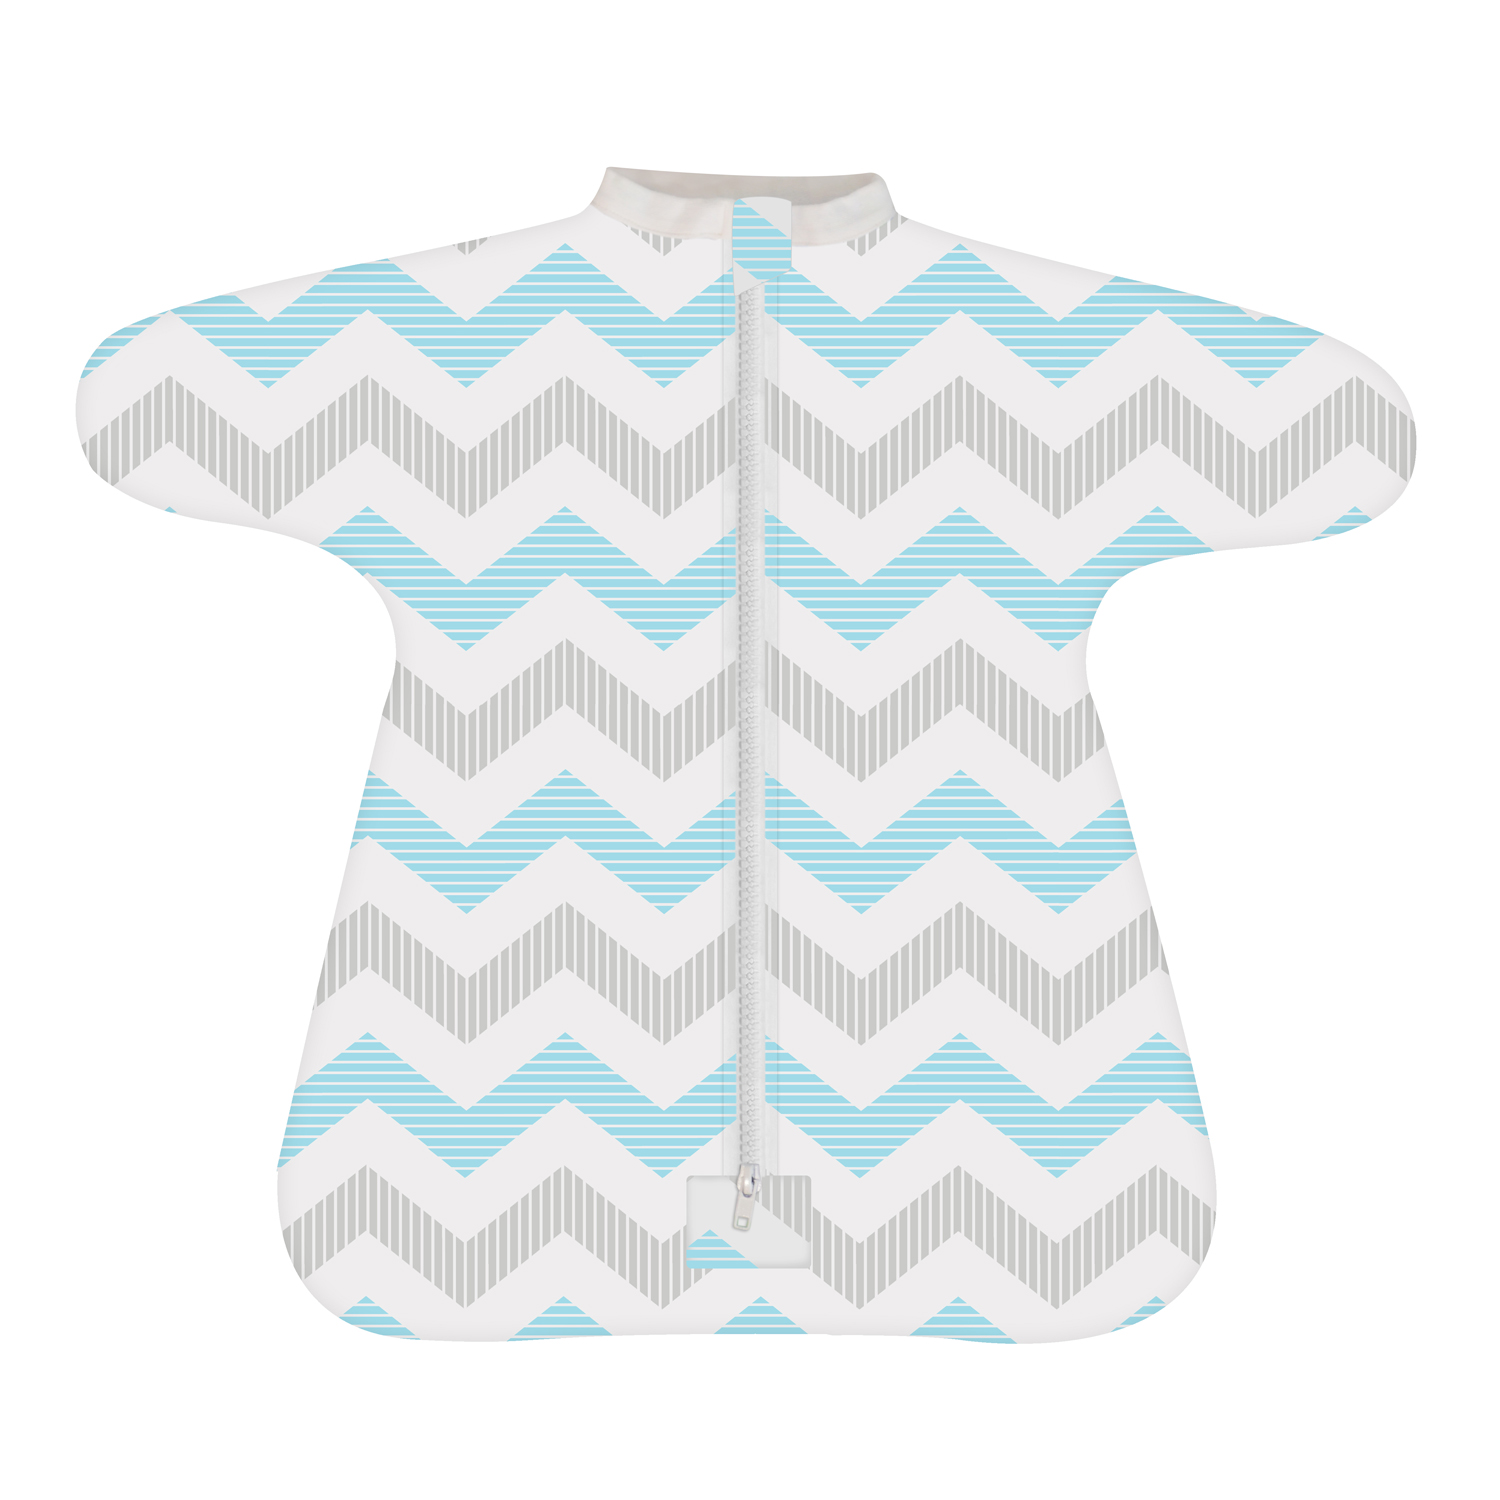 Cozy Baby Sleeper Swaddle  Wearable Blanket - Spunky Chevron - 3-6 Month